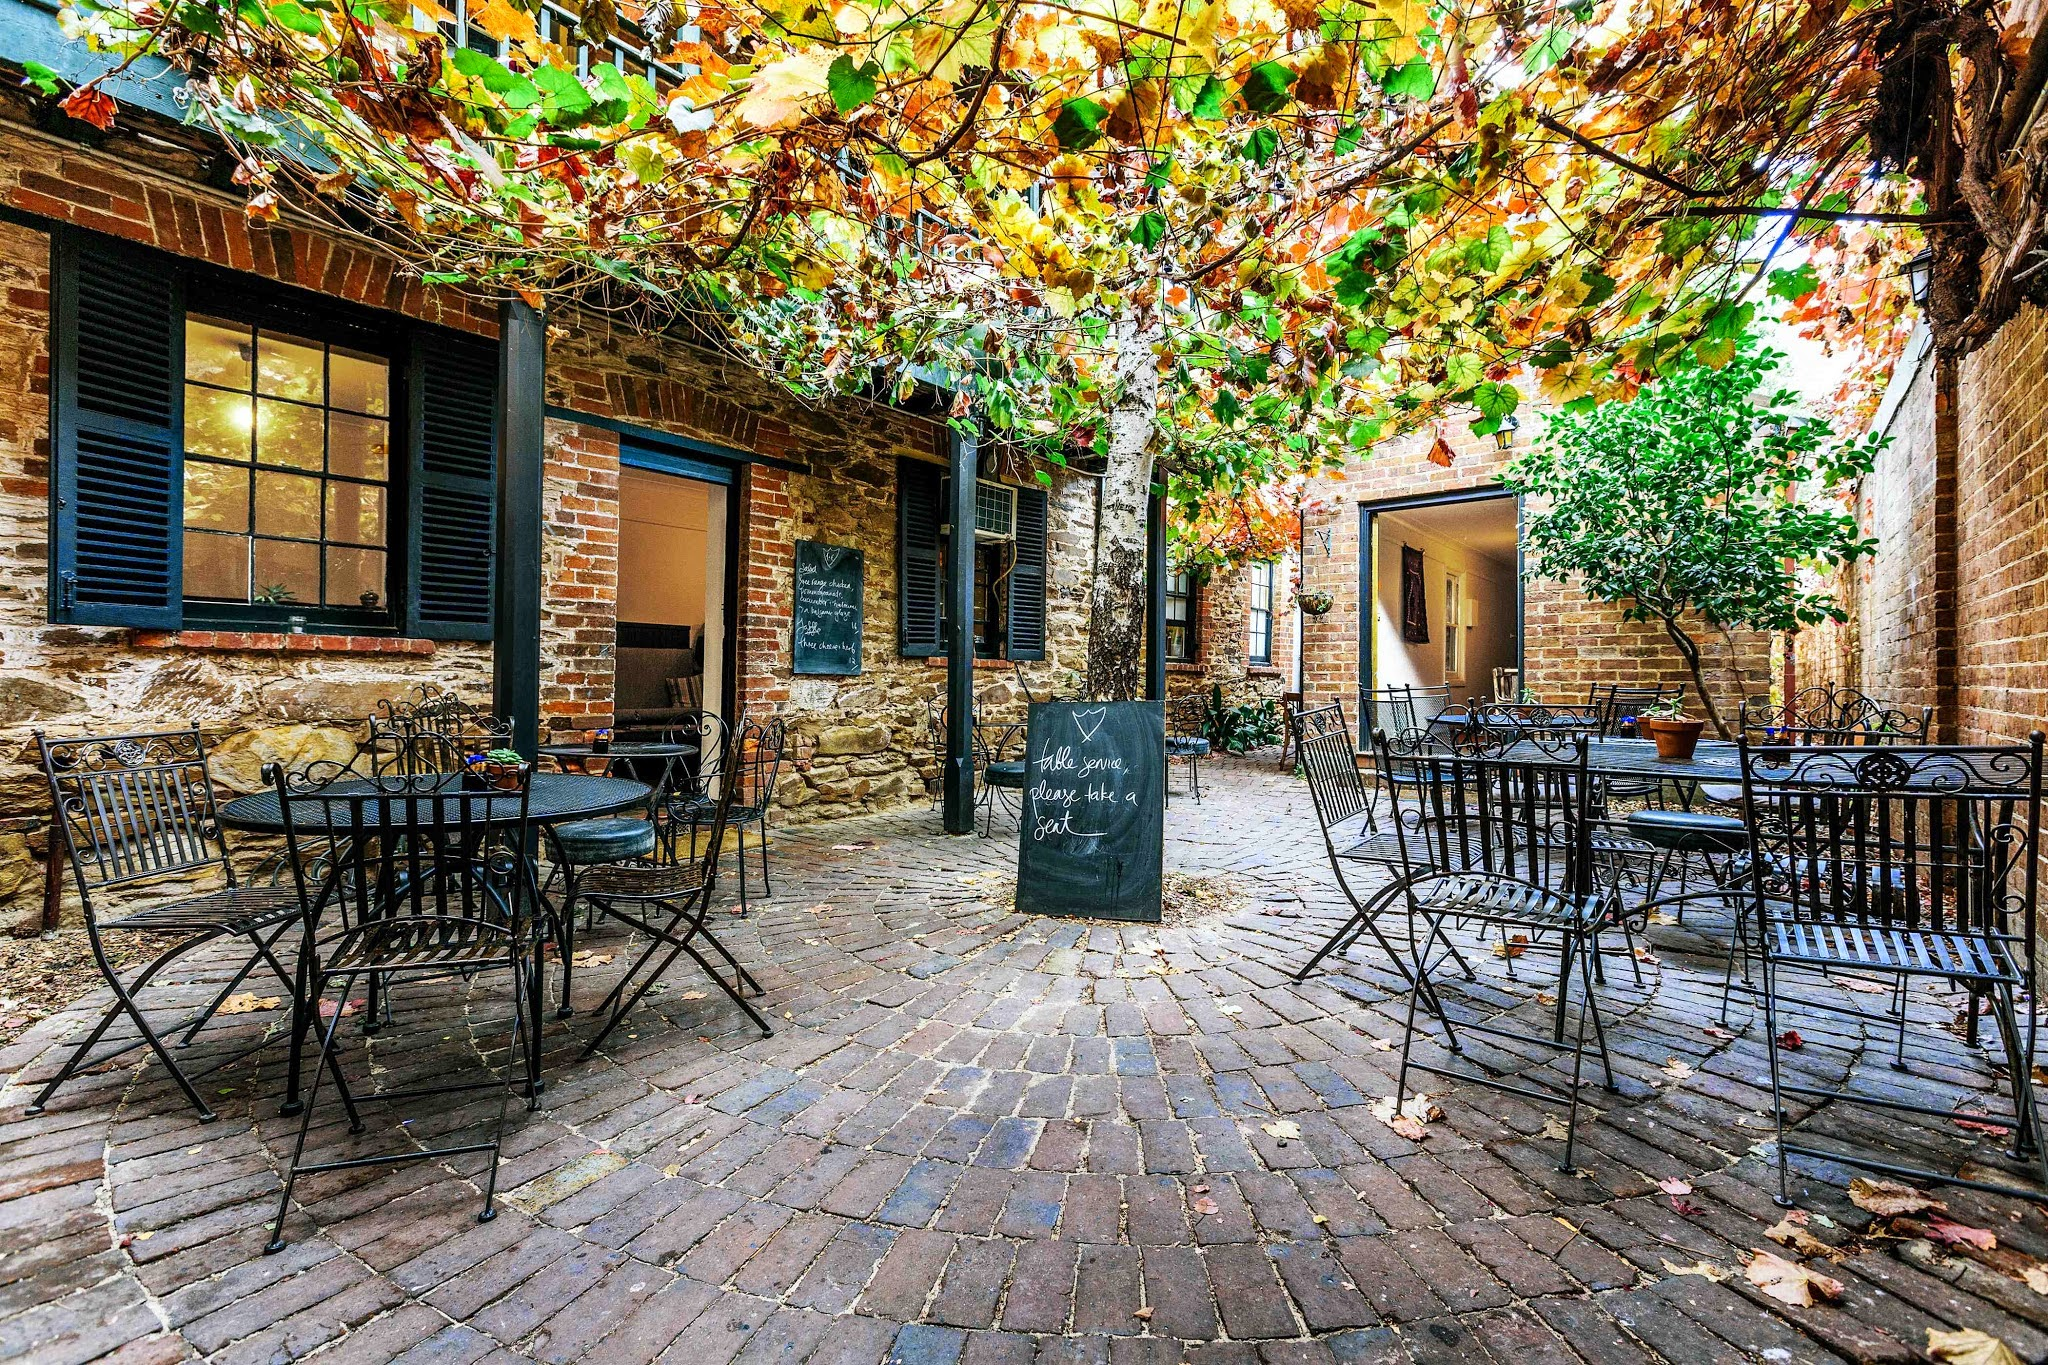 Mudgee Australia  City pictures : Alby and Esthers – view of the courtyard, Mudgee, NSW, Australia.